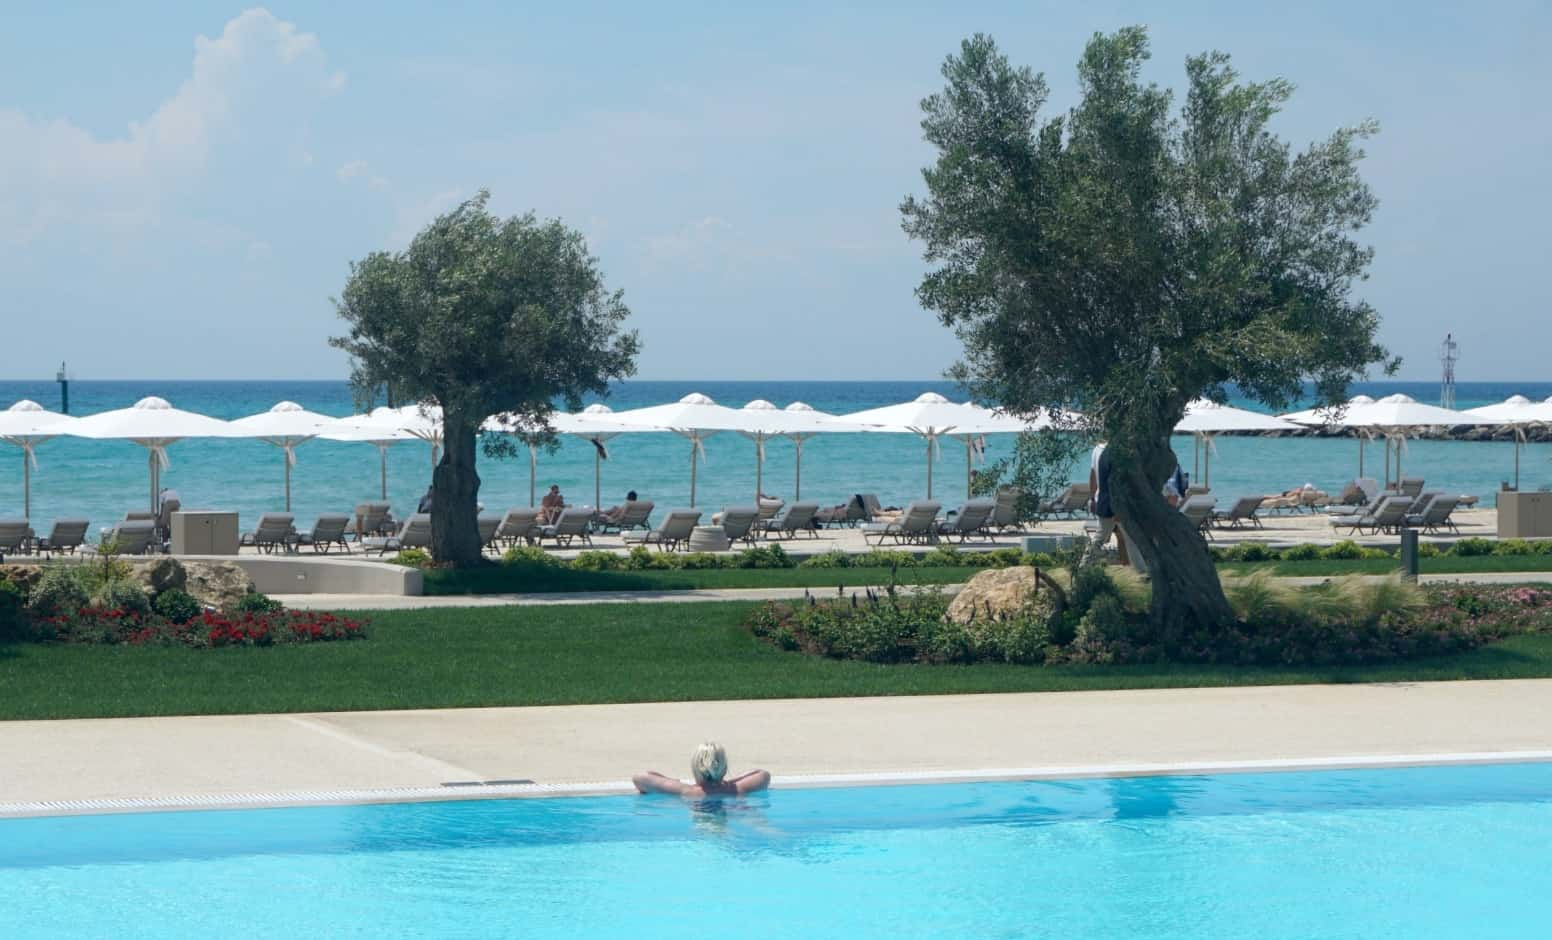 The View of the beach from the pool at SAni Dunes